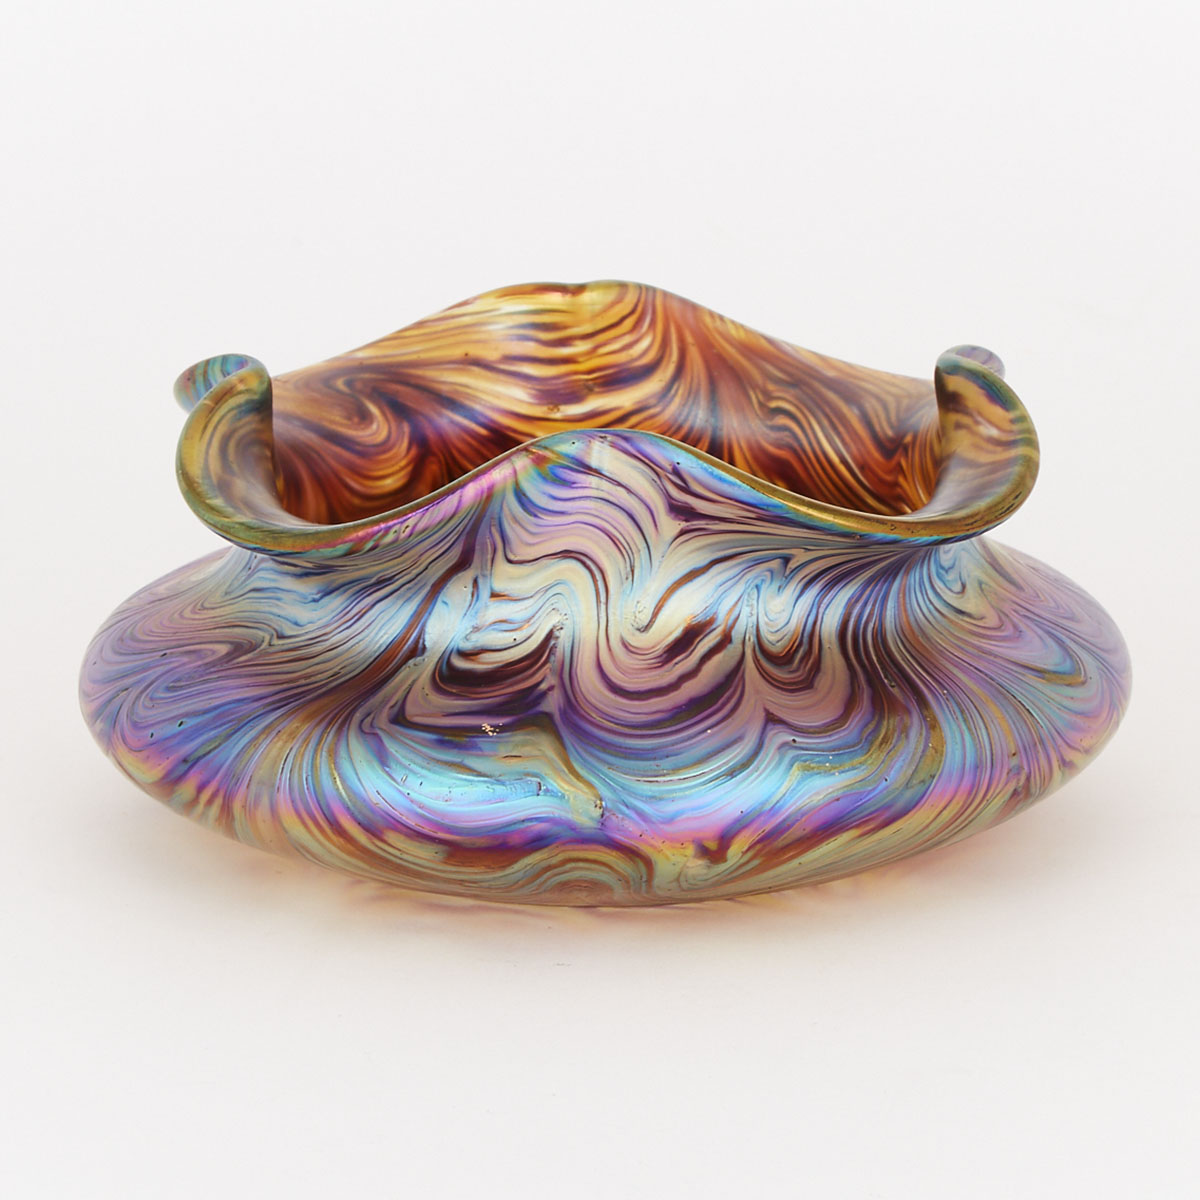 Austrian Iridescent Glass Vase, possibly Loetz, c.1900